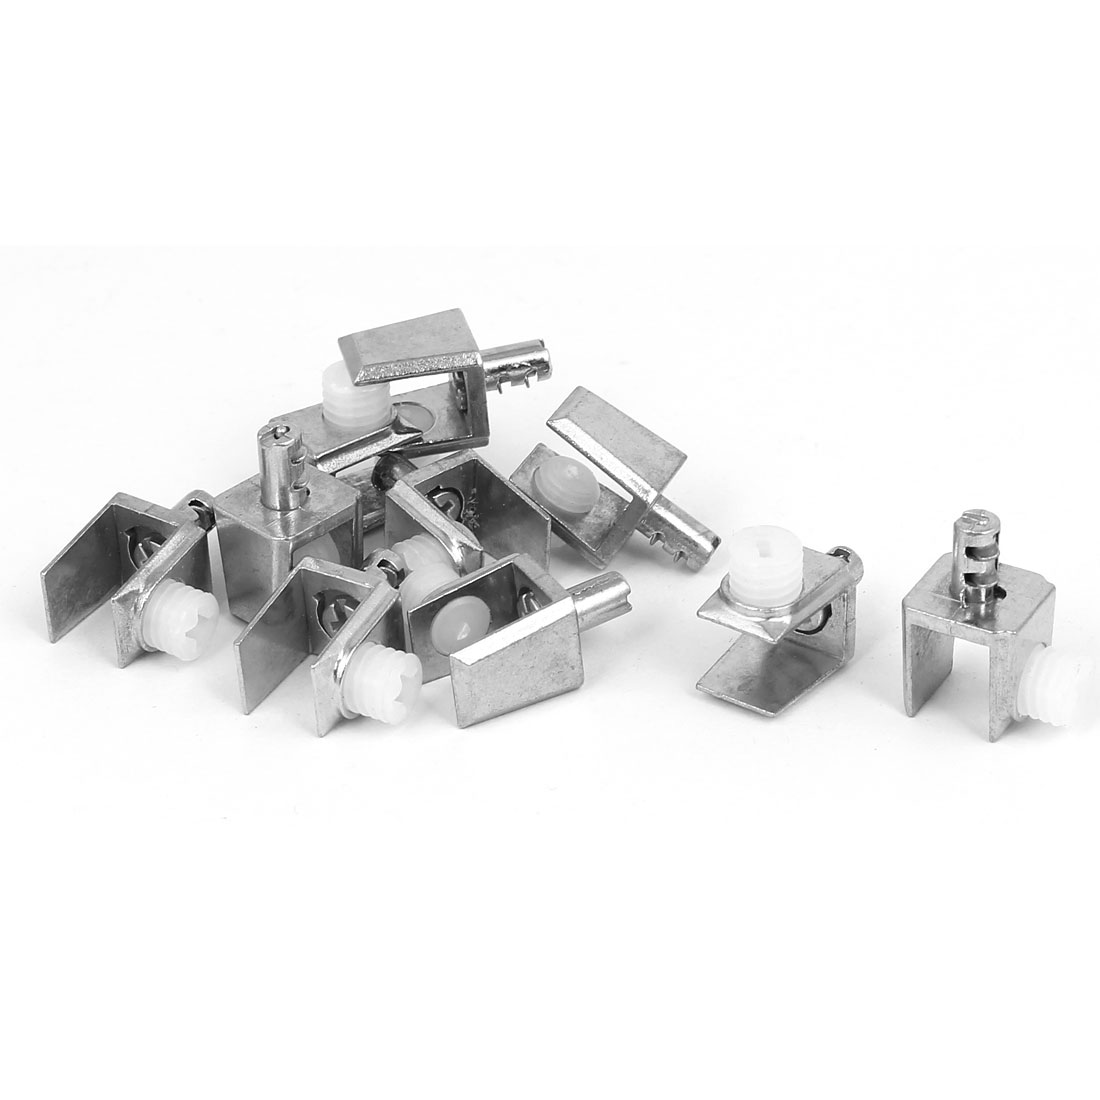 4mm-8mm Thickness Adjustable Rectangle Glass Shelf Clamp Clip Support Bracket 10pcs